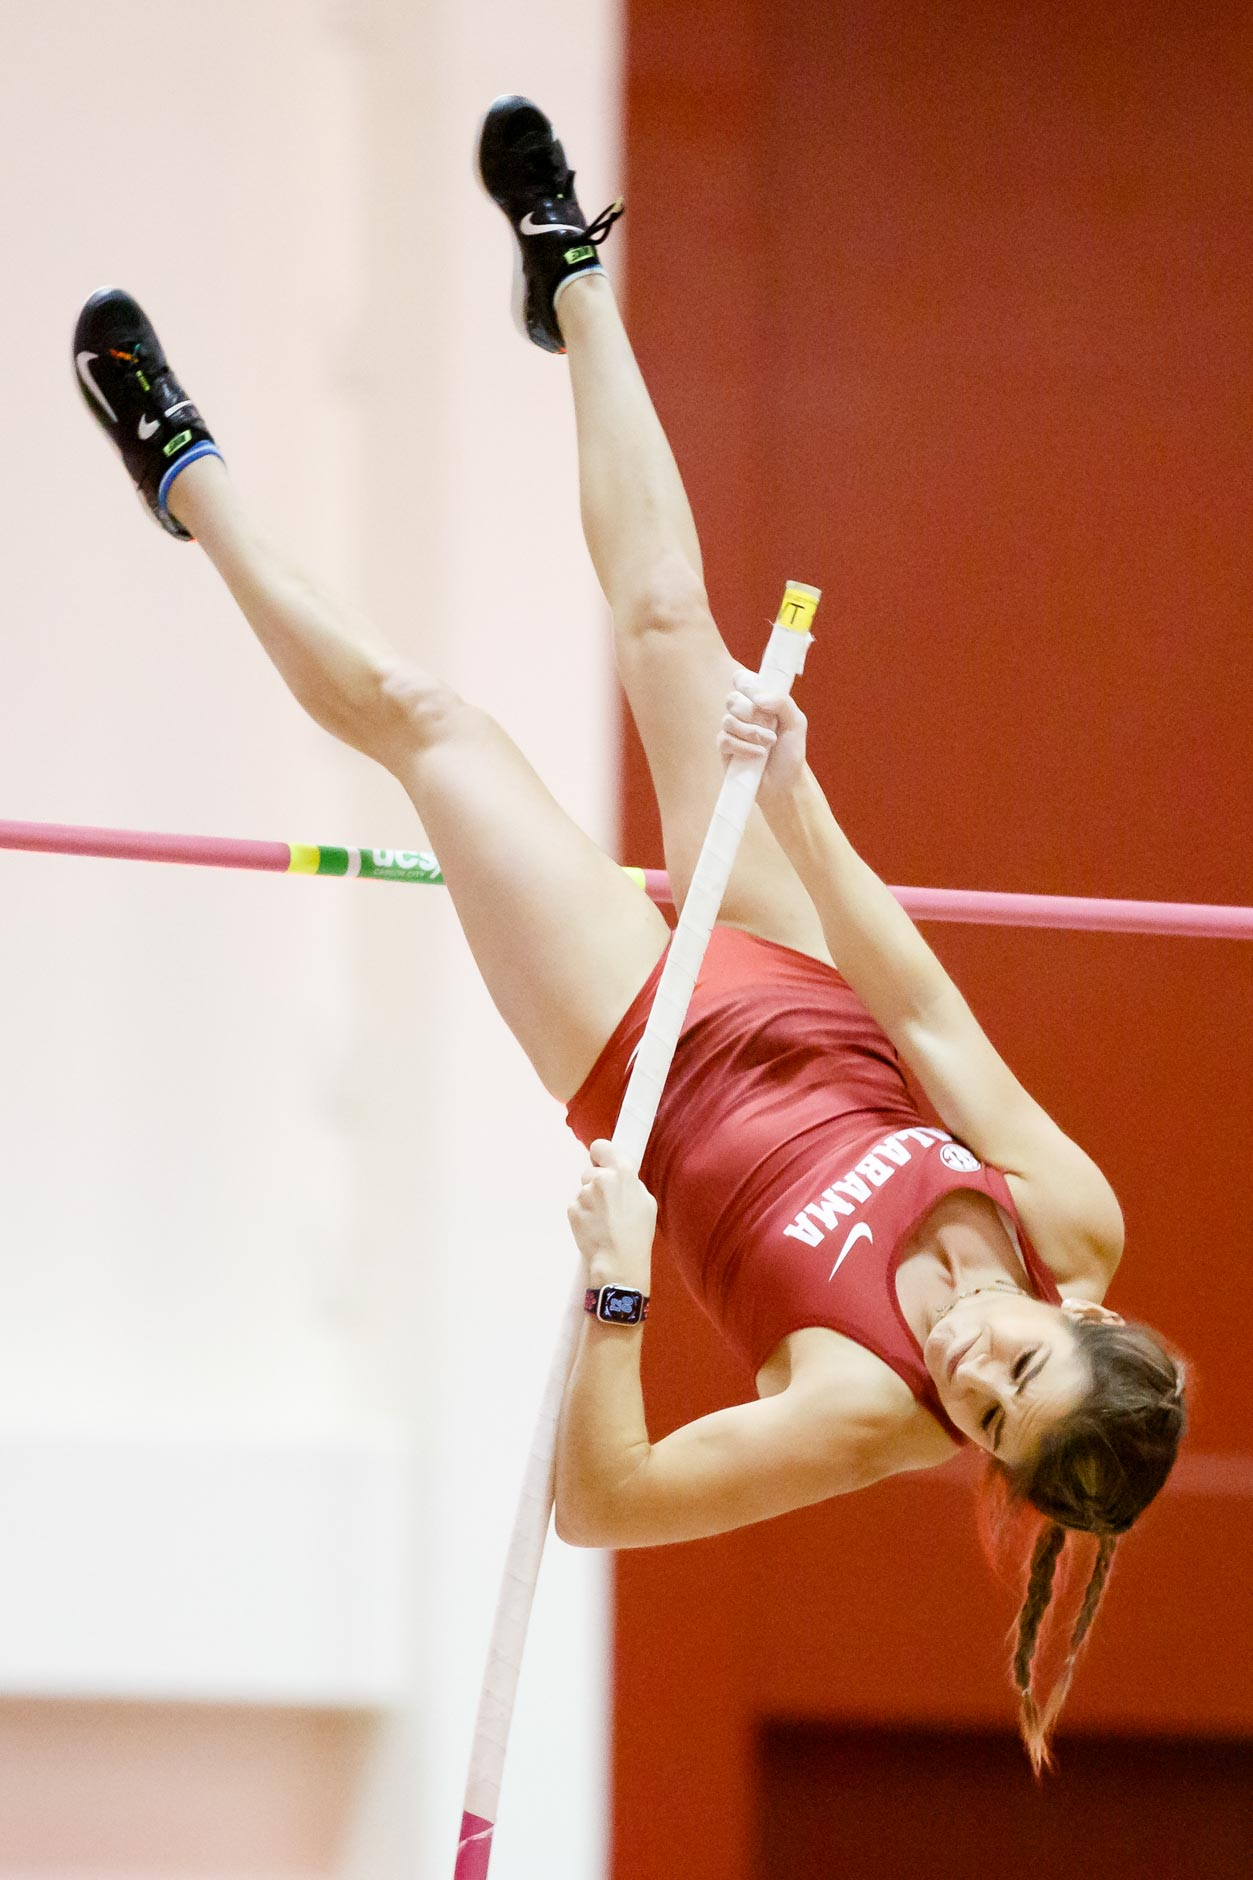 Alabama's Kayla Cecil competes in the pole vault during the Indiana University Relays in Bloomington, Indiana on Saturday, Feb. 1, 2020. (Photo by James Brosher)